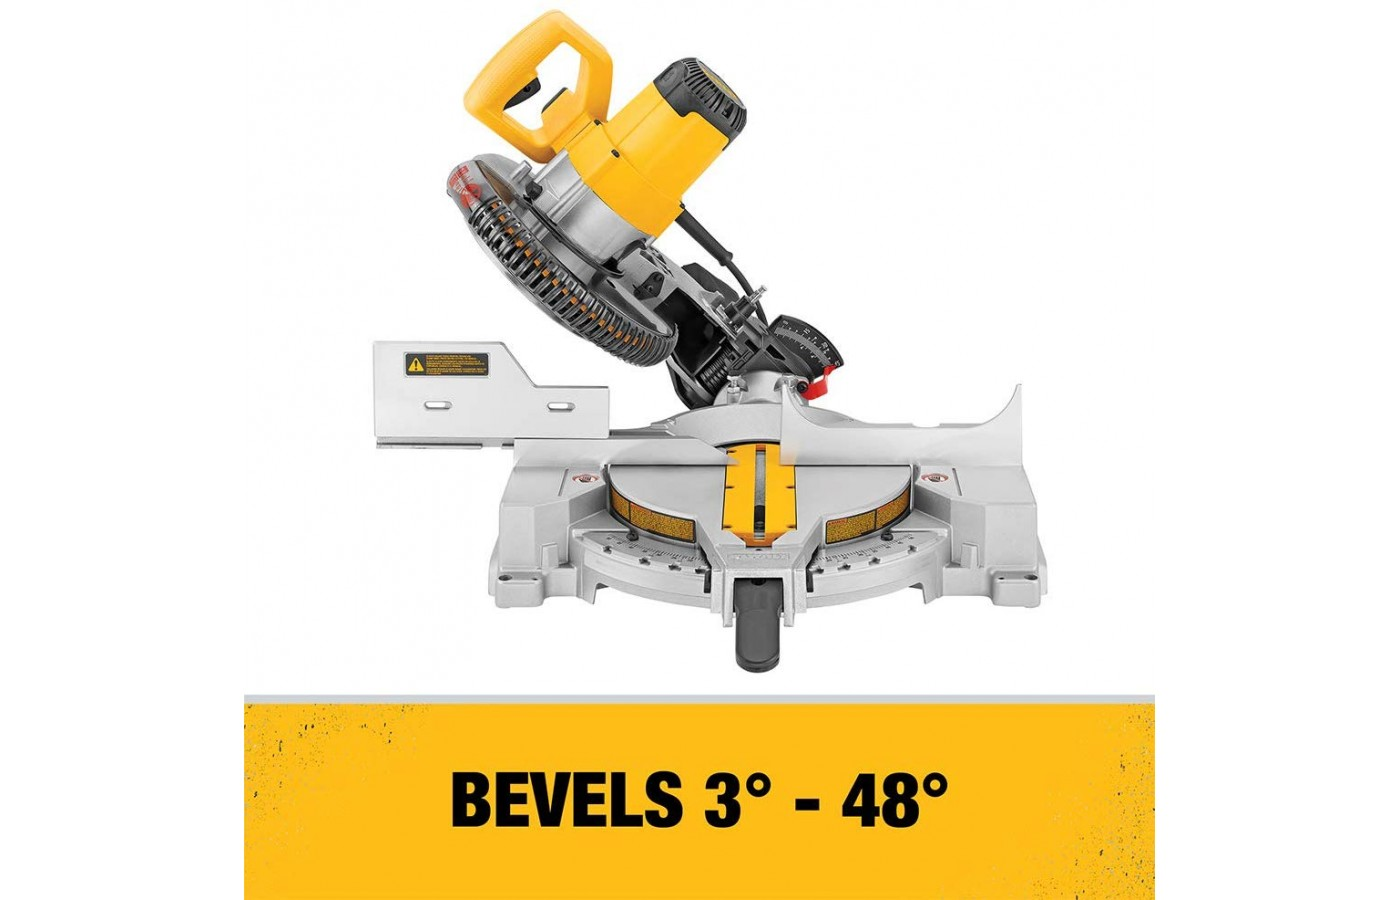 The Dewalt DW713 is easy to use.